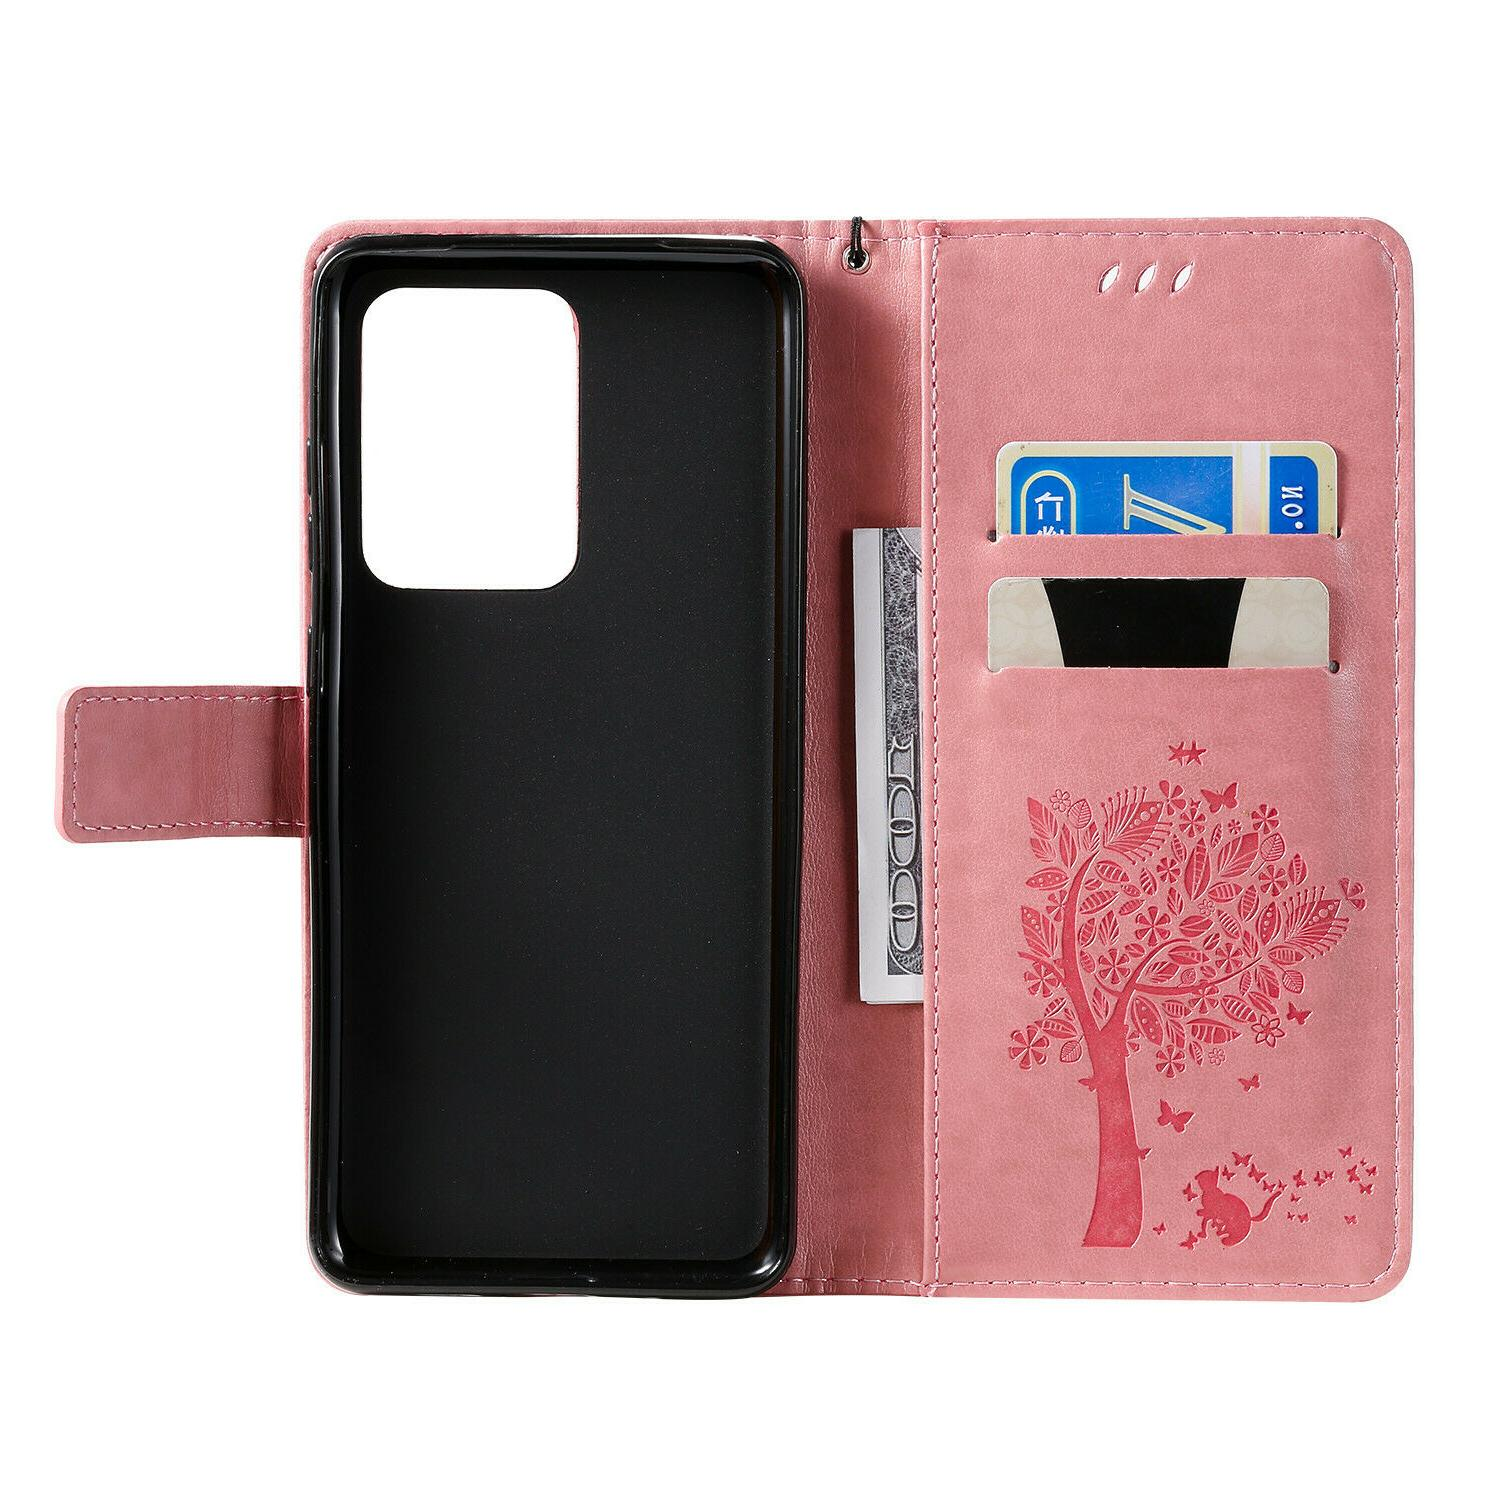 Leather Case For Note 9 S10 S10e A51 A71